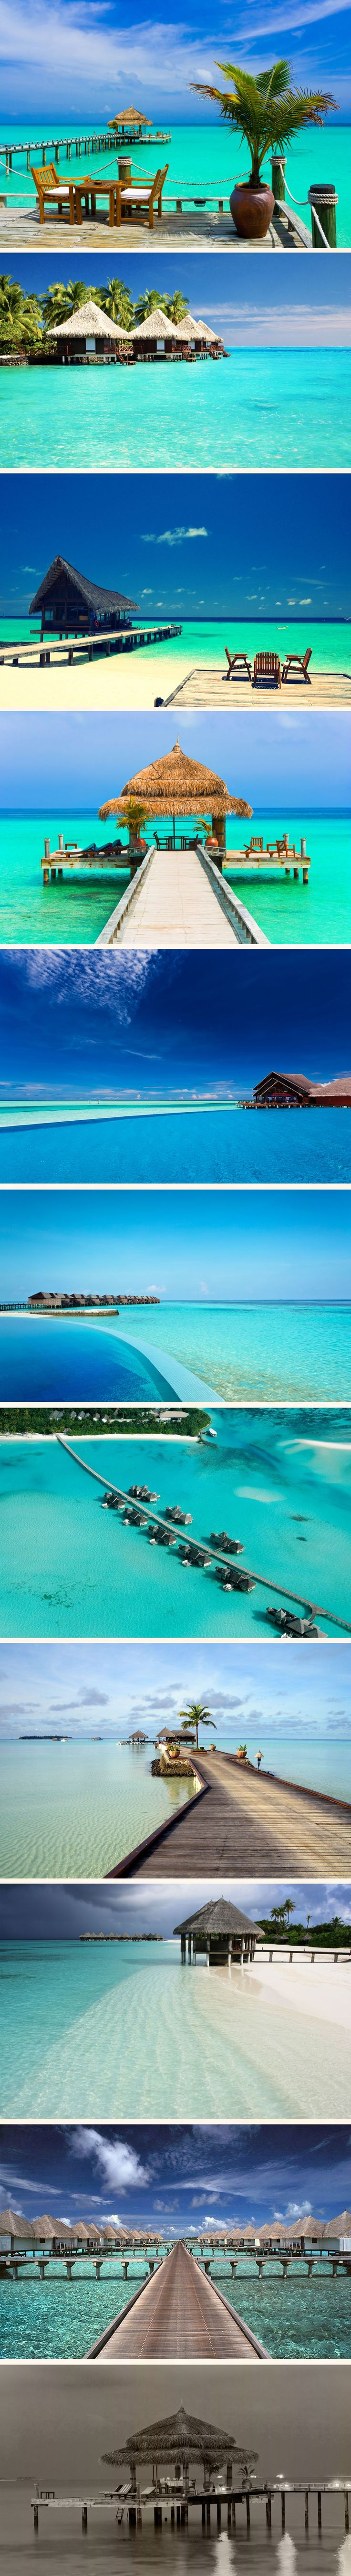 Maldives ☼ So expensive but one of these days I will go just to relax in the sun with the white beaches and clear blue sea :P